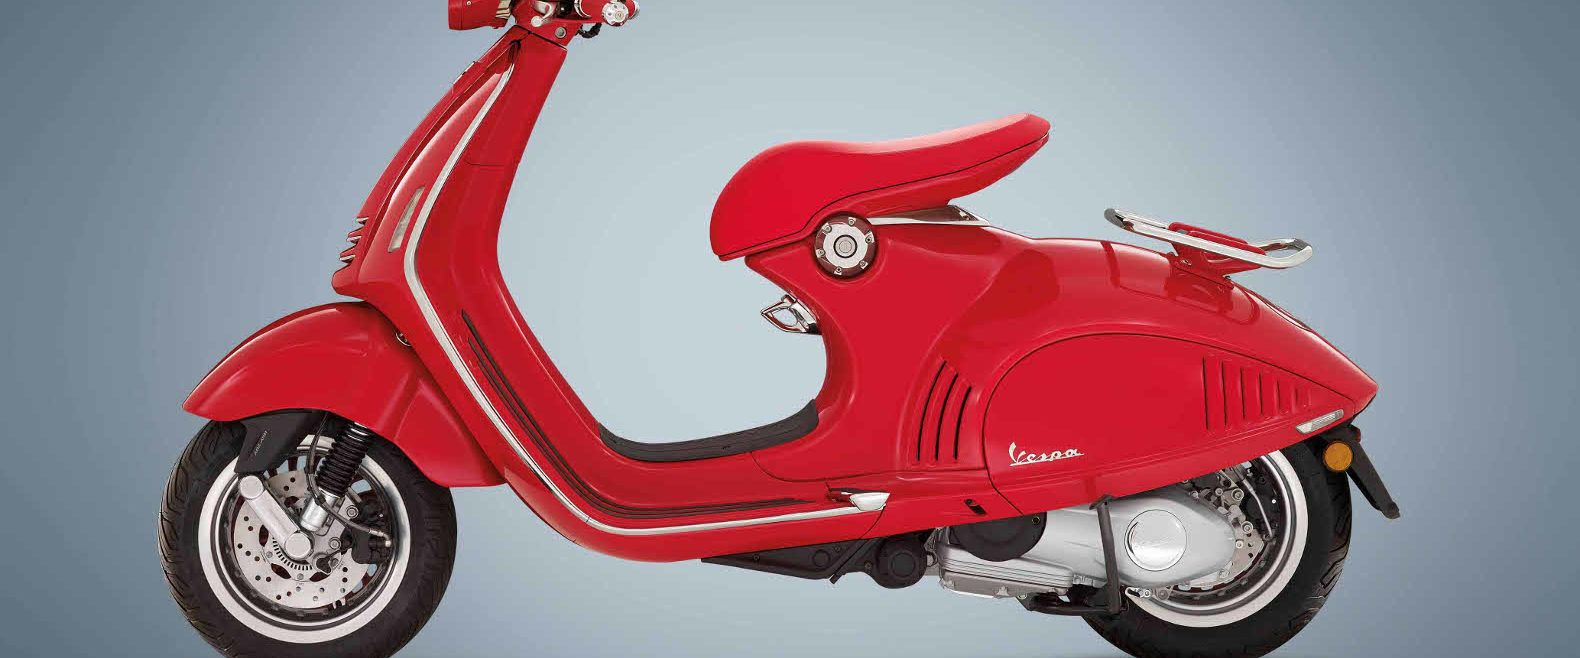 Vespa has unveiled its first all-electric scooter model, which is scheduled to begin production in late 2017.